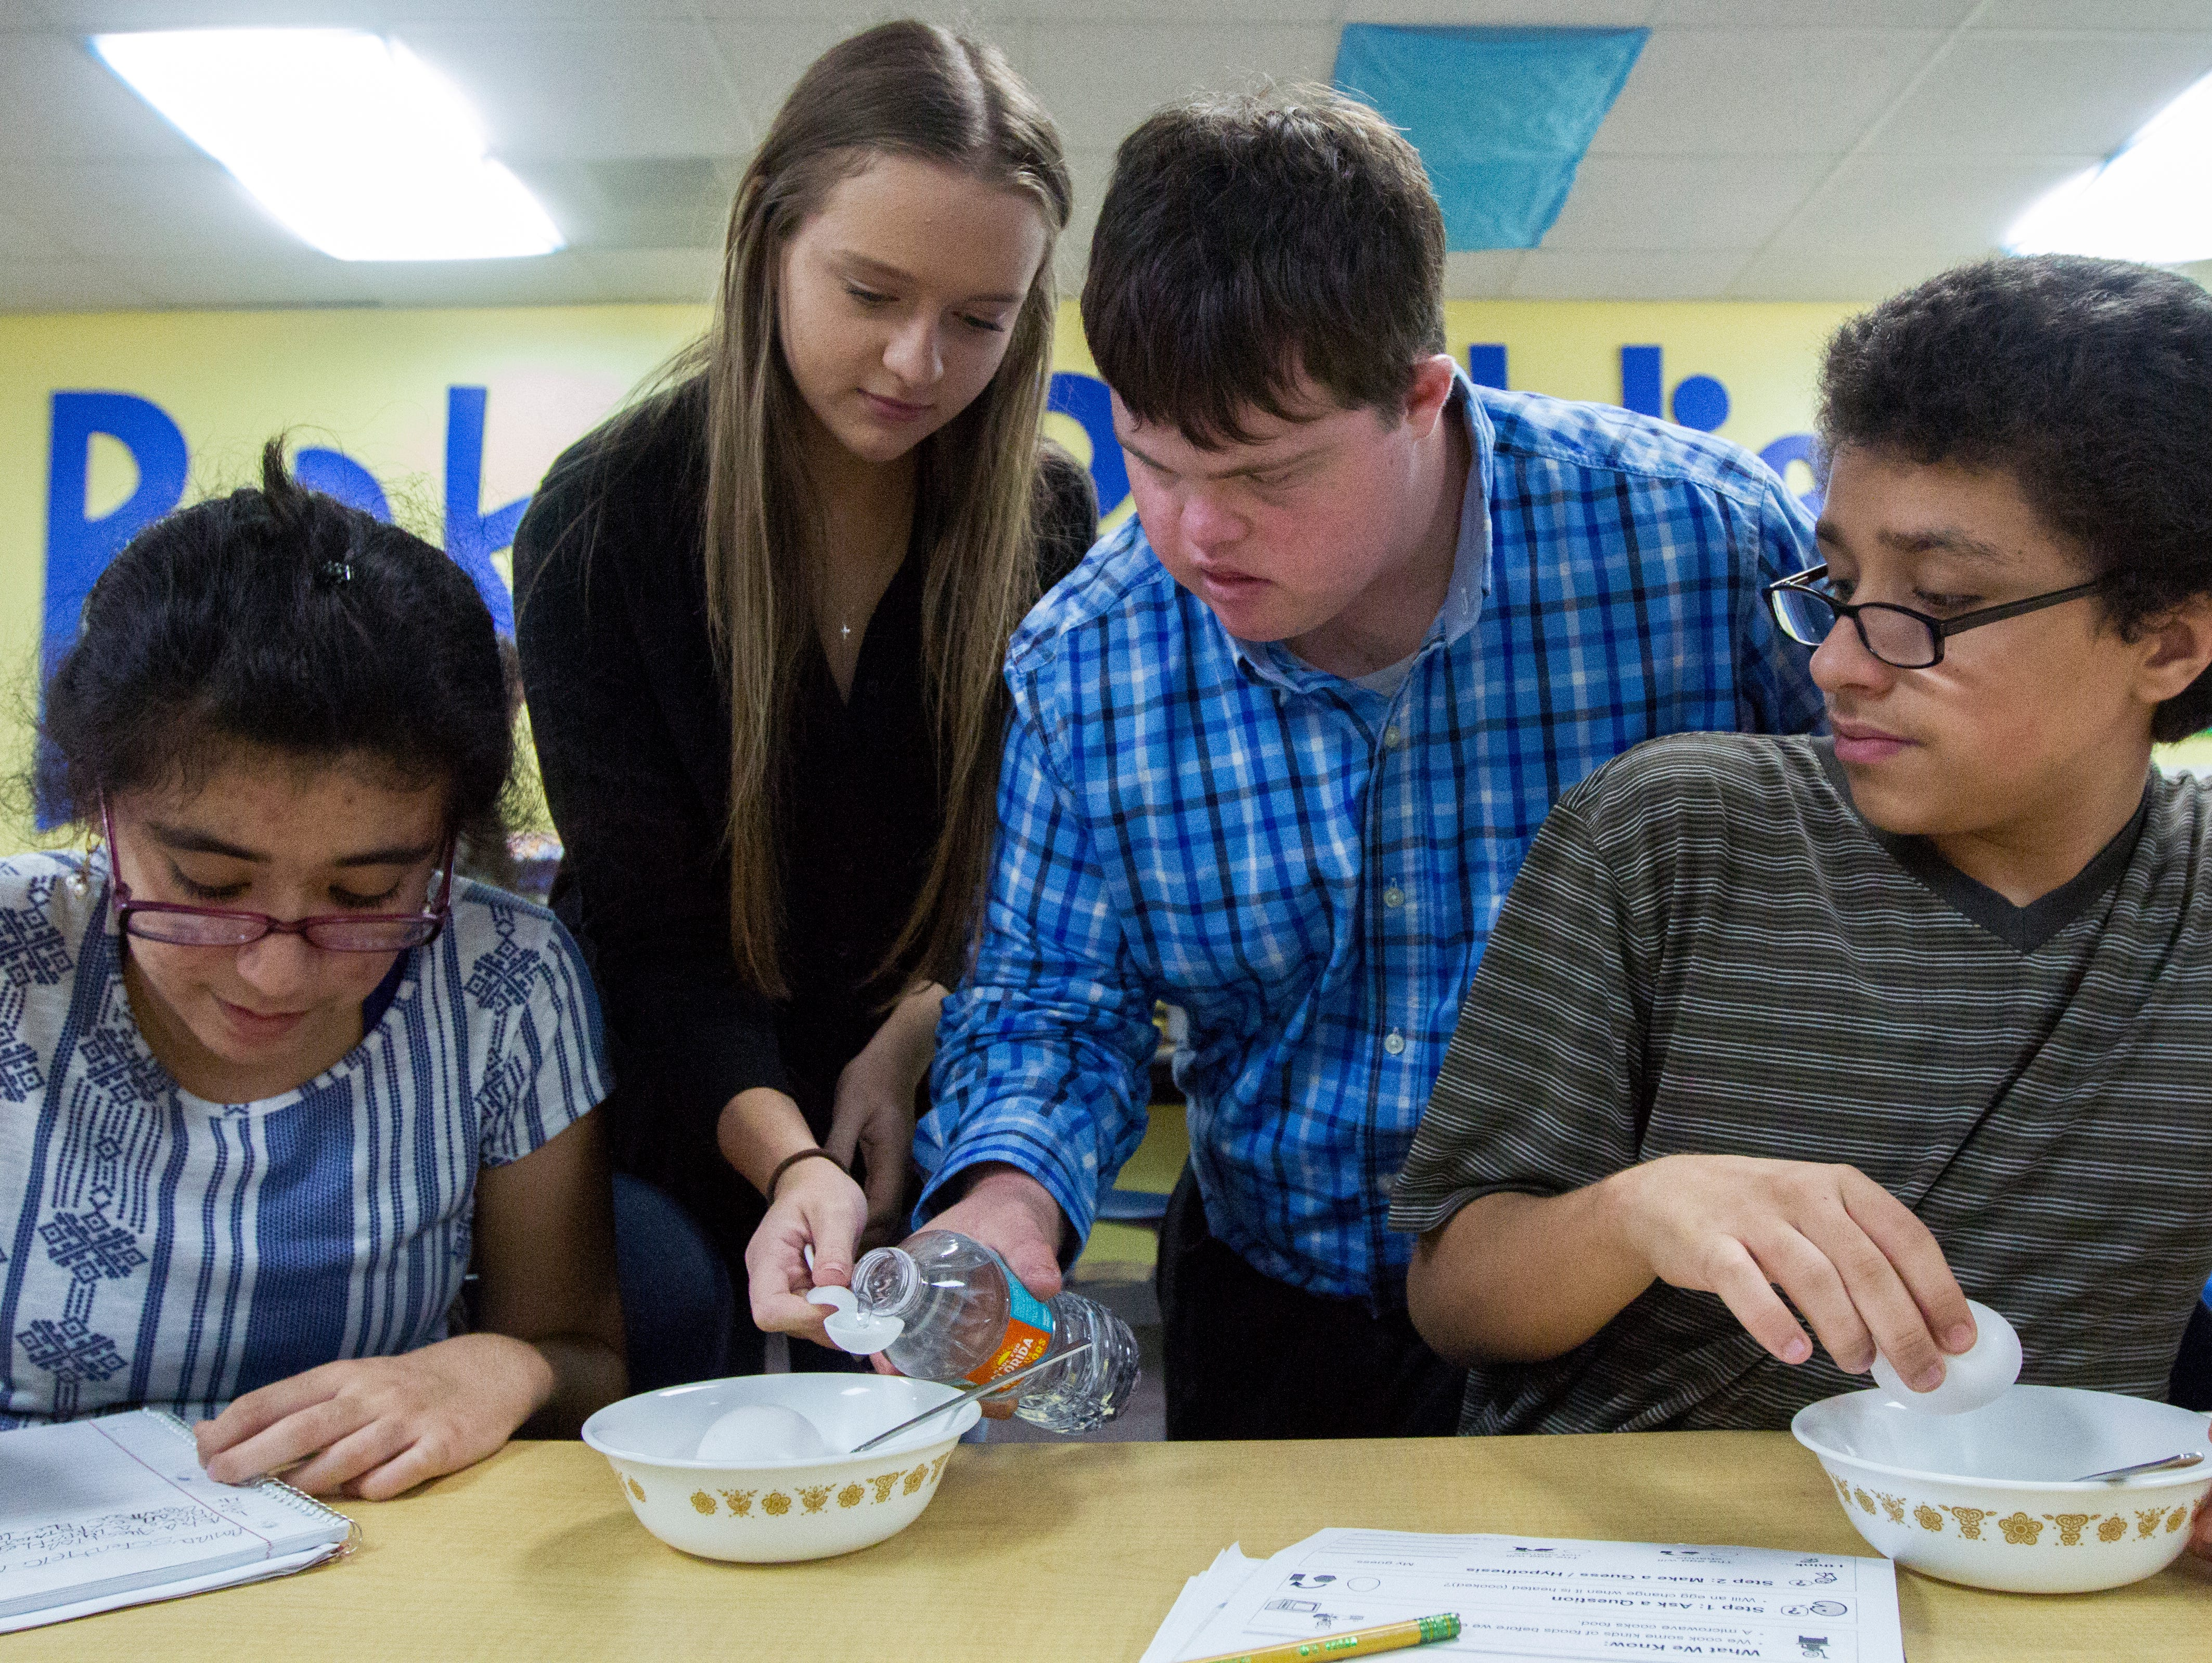 Christian Diggs helps pour water alongside Kendal Hammond during a class experiment as part of Mrs. Molly Haskill's English class at Ida Baker High Schoo lin Cape Coral on Tuesday, Oct. 11. Classmates Amina Mohamed,left, and Lazaro Hernandez were also participating.